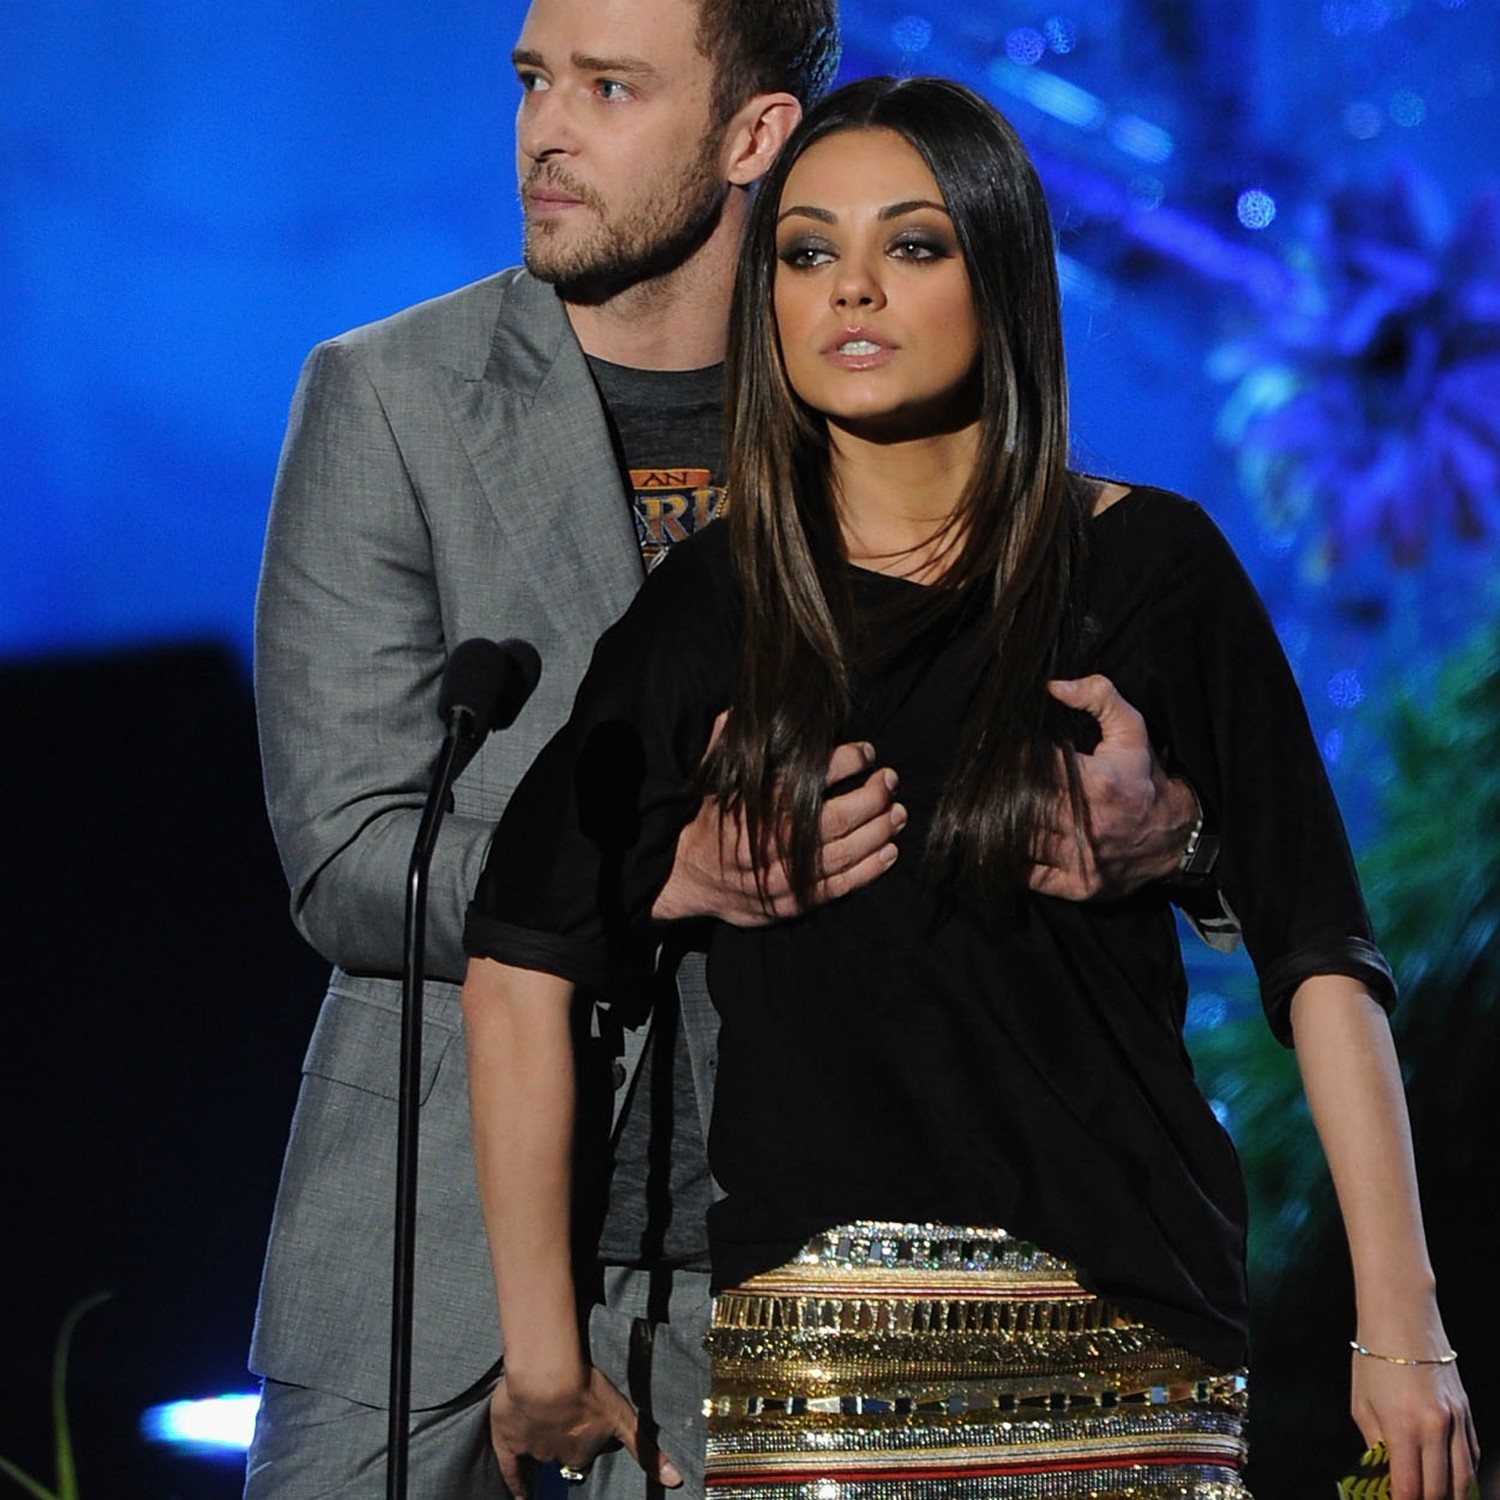 A atriz Mila Kunis e o cantor Justin Timberlake no MTV Movie Awards 2011. Atente para as mãos dos dois. (Foto: Getty Images)